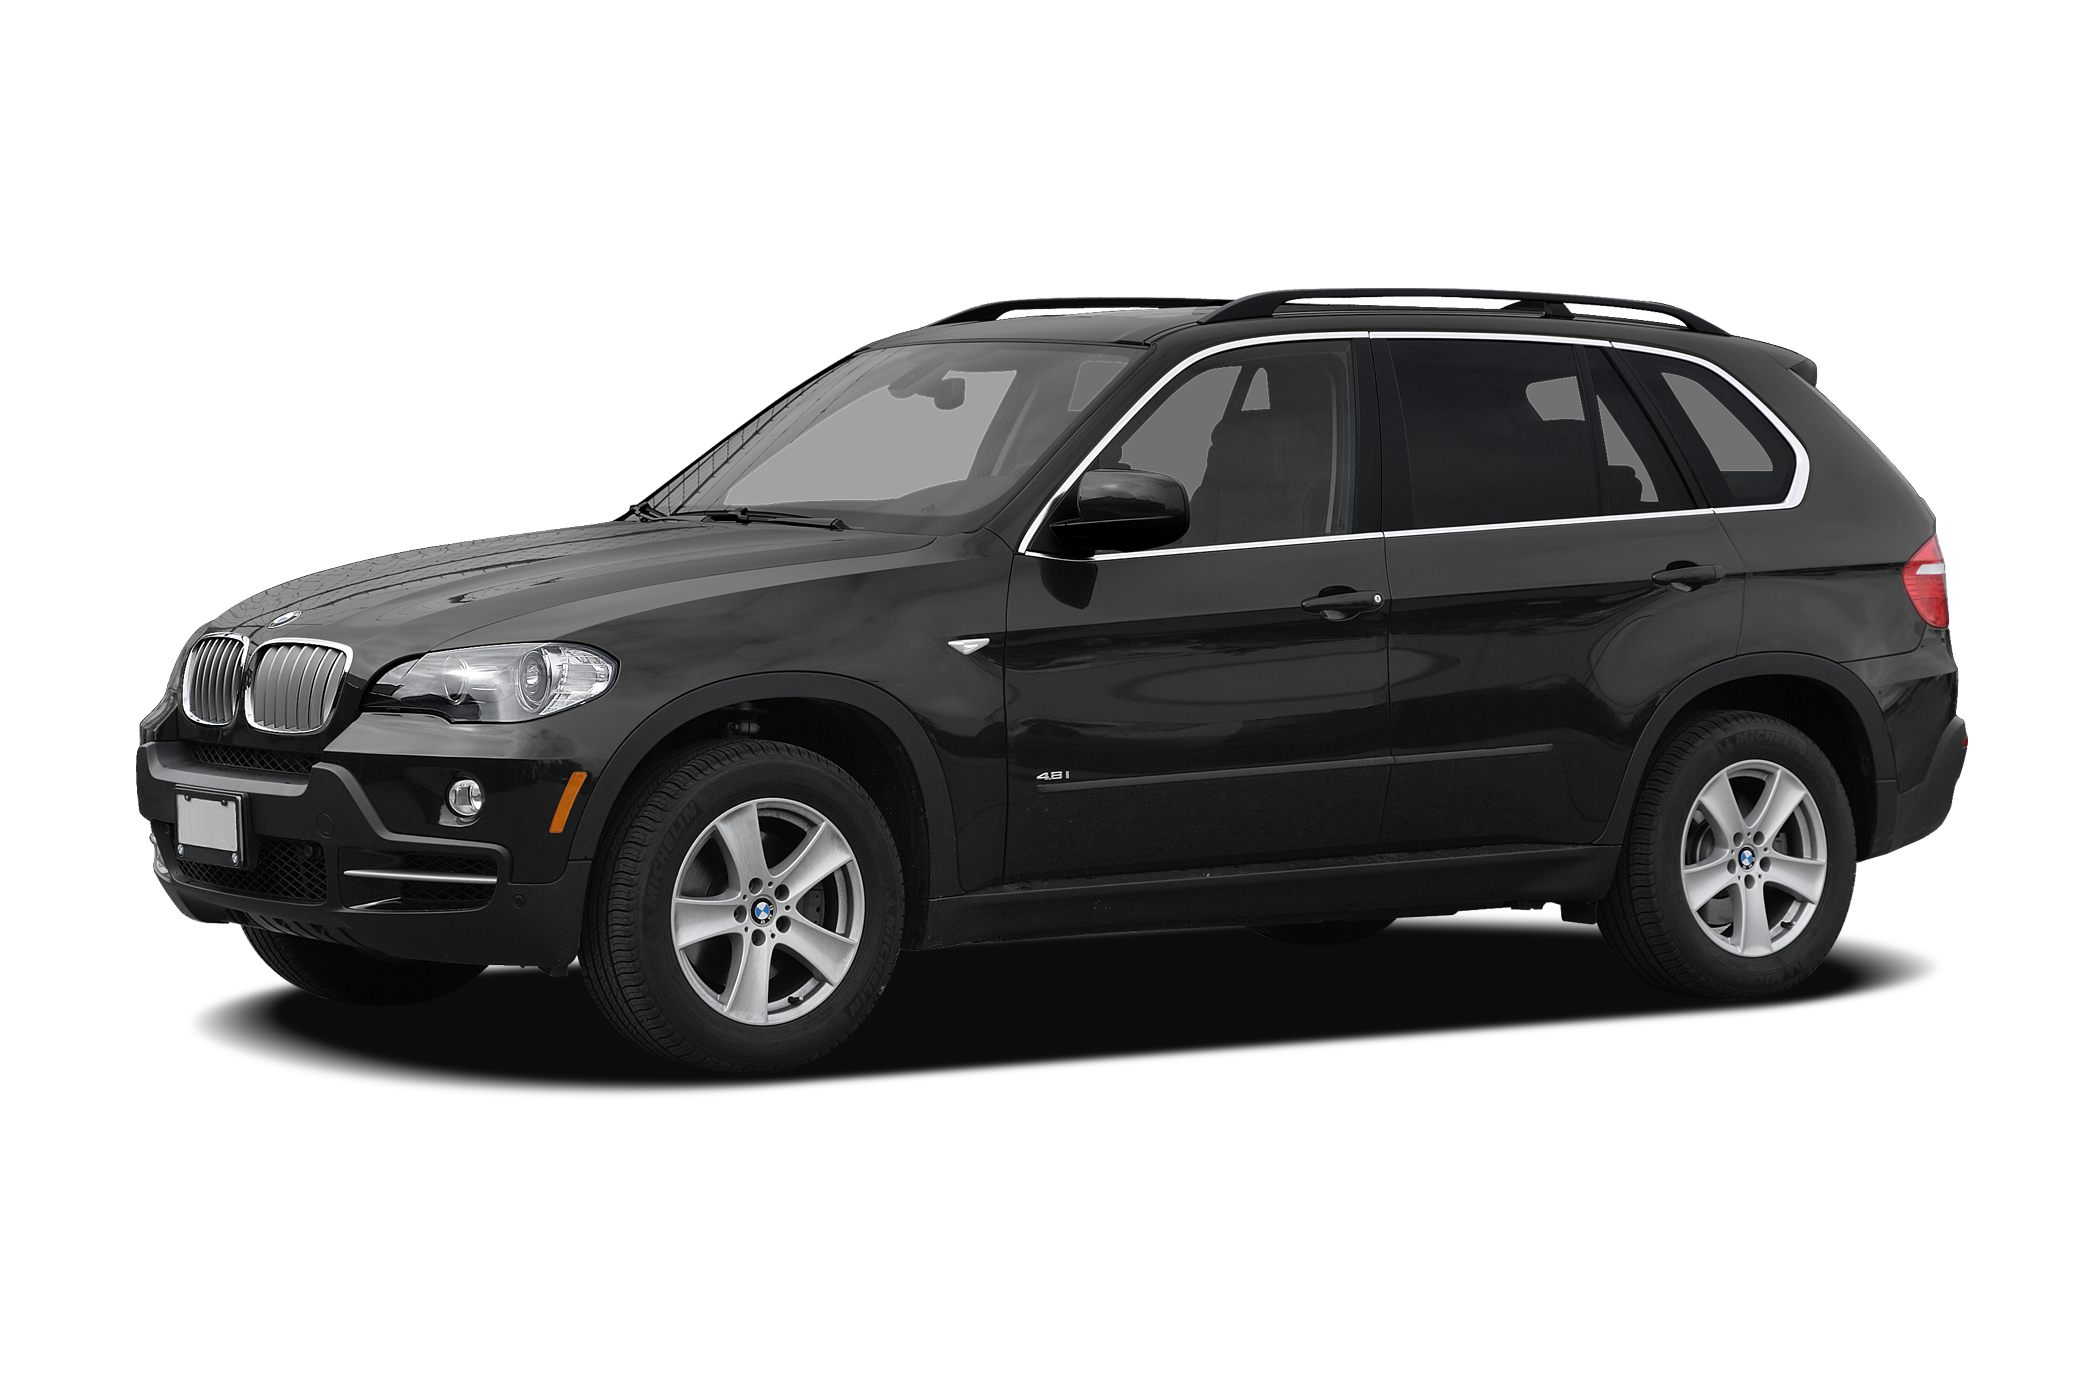 2007 BMW X5 3.0si SUV for sale in Pittsfield for $21,950 with 76,768 miles.